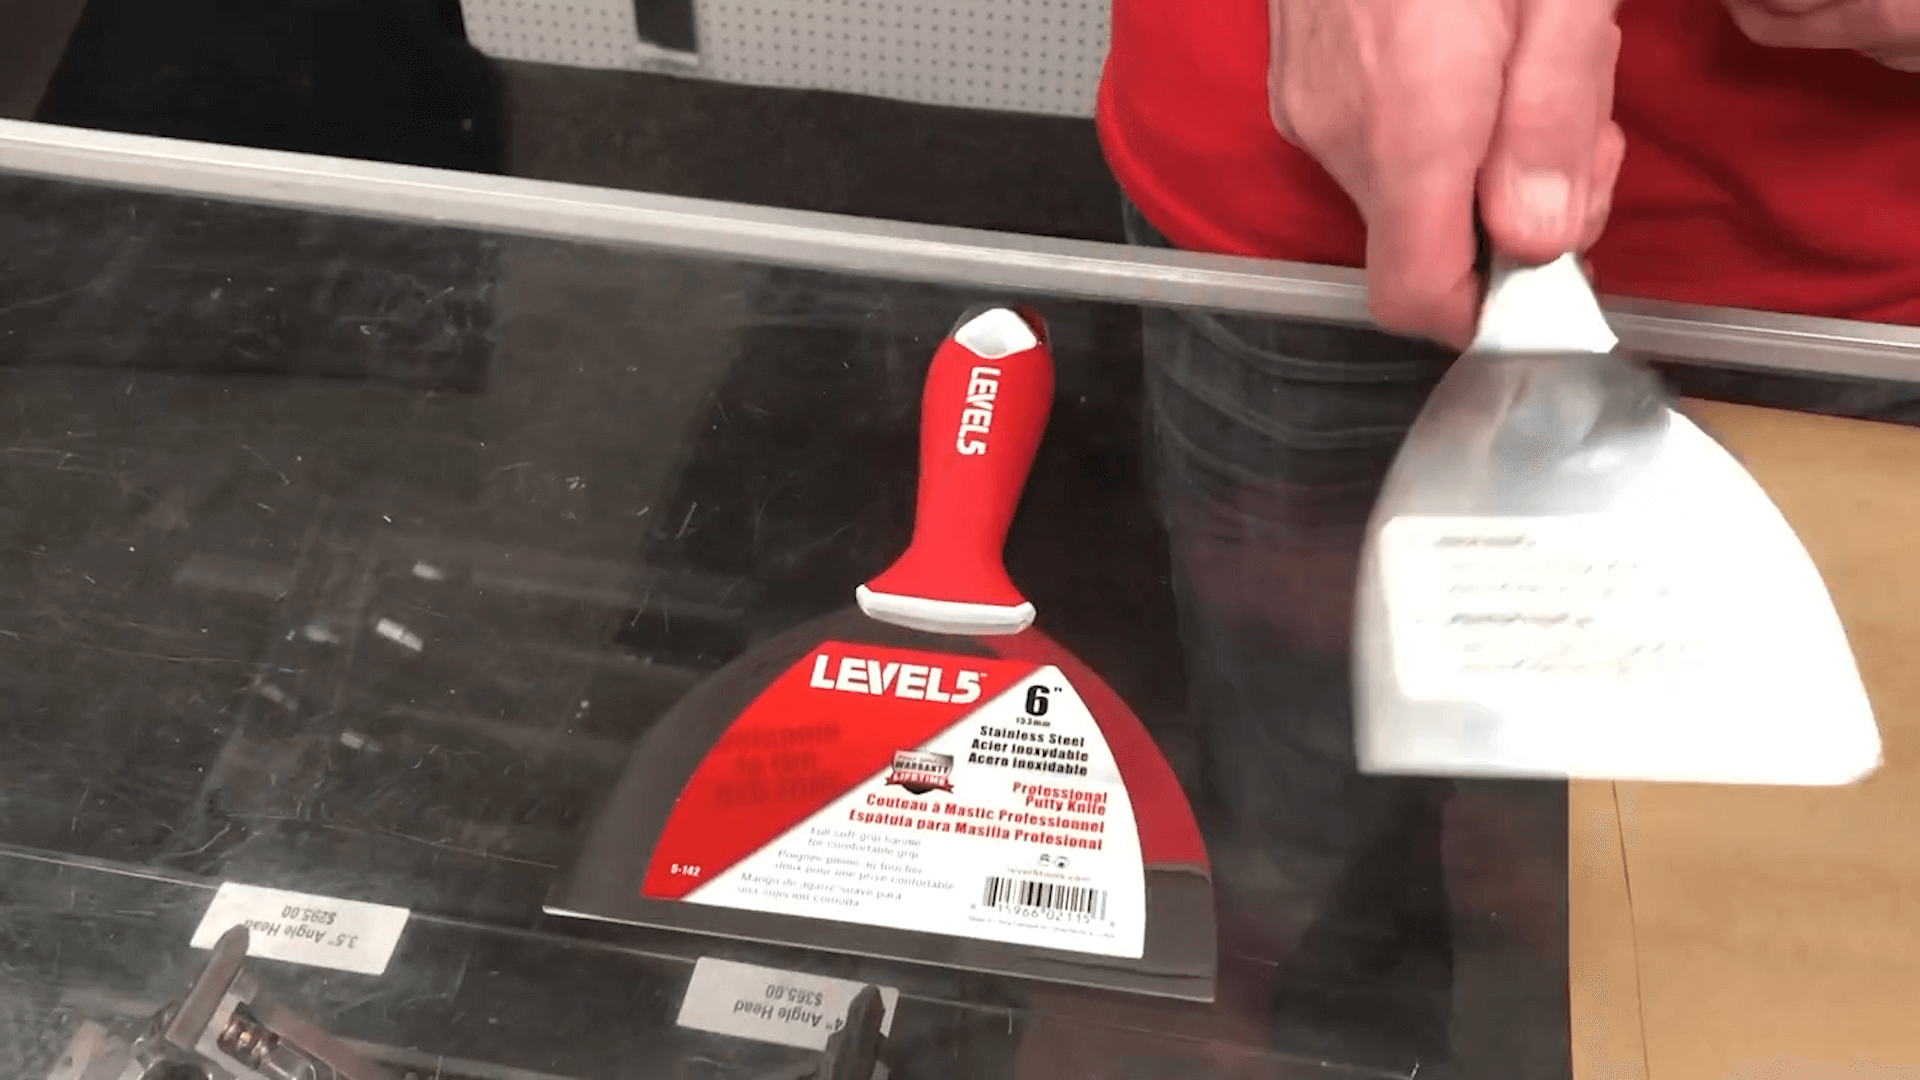 How Level5 Tools Makes Drywall Joint Knives